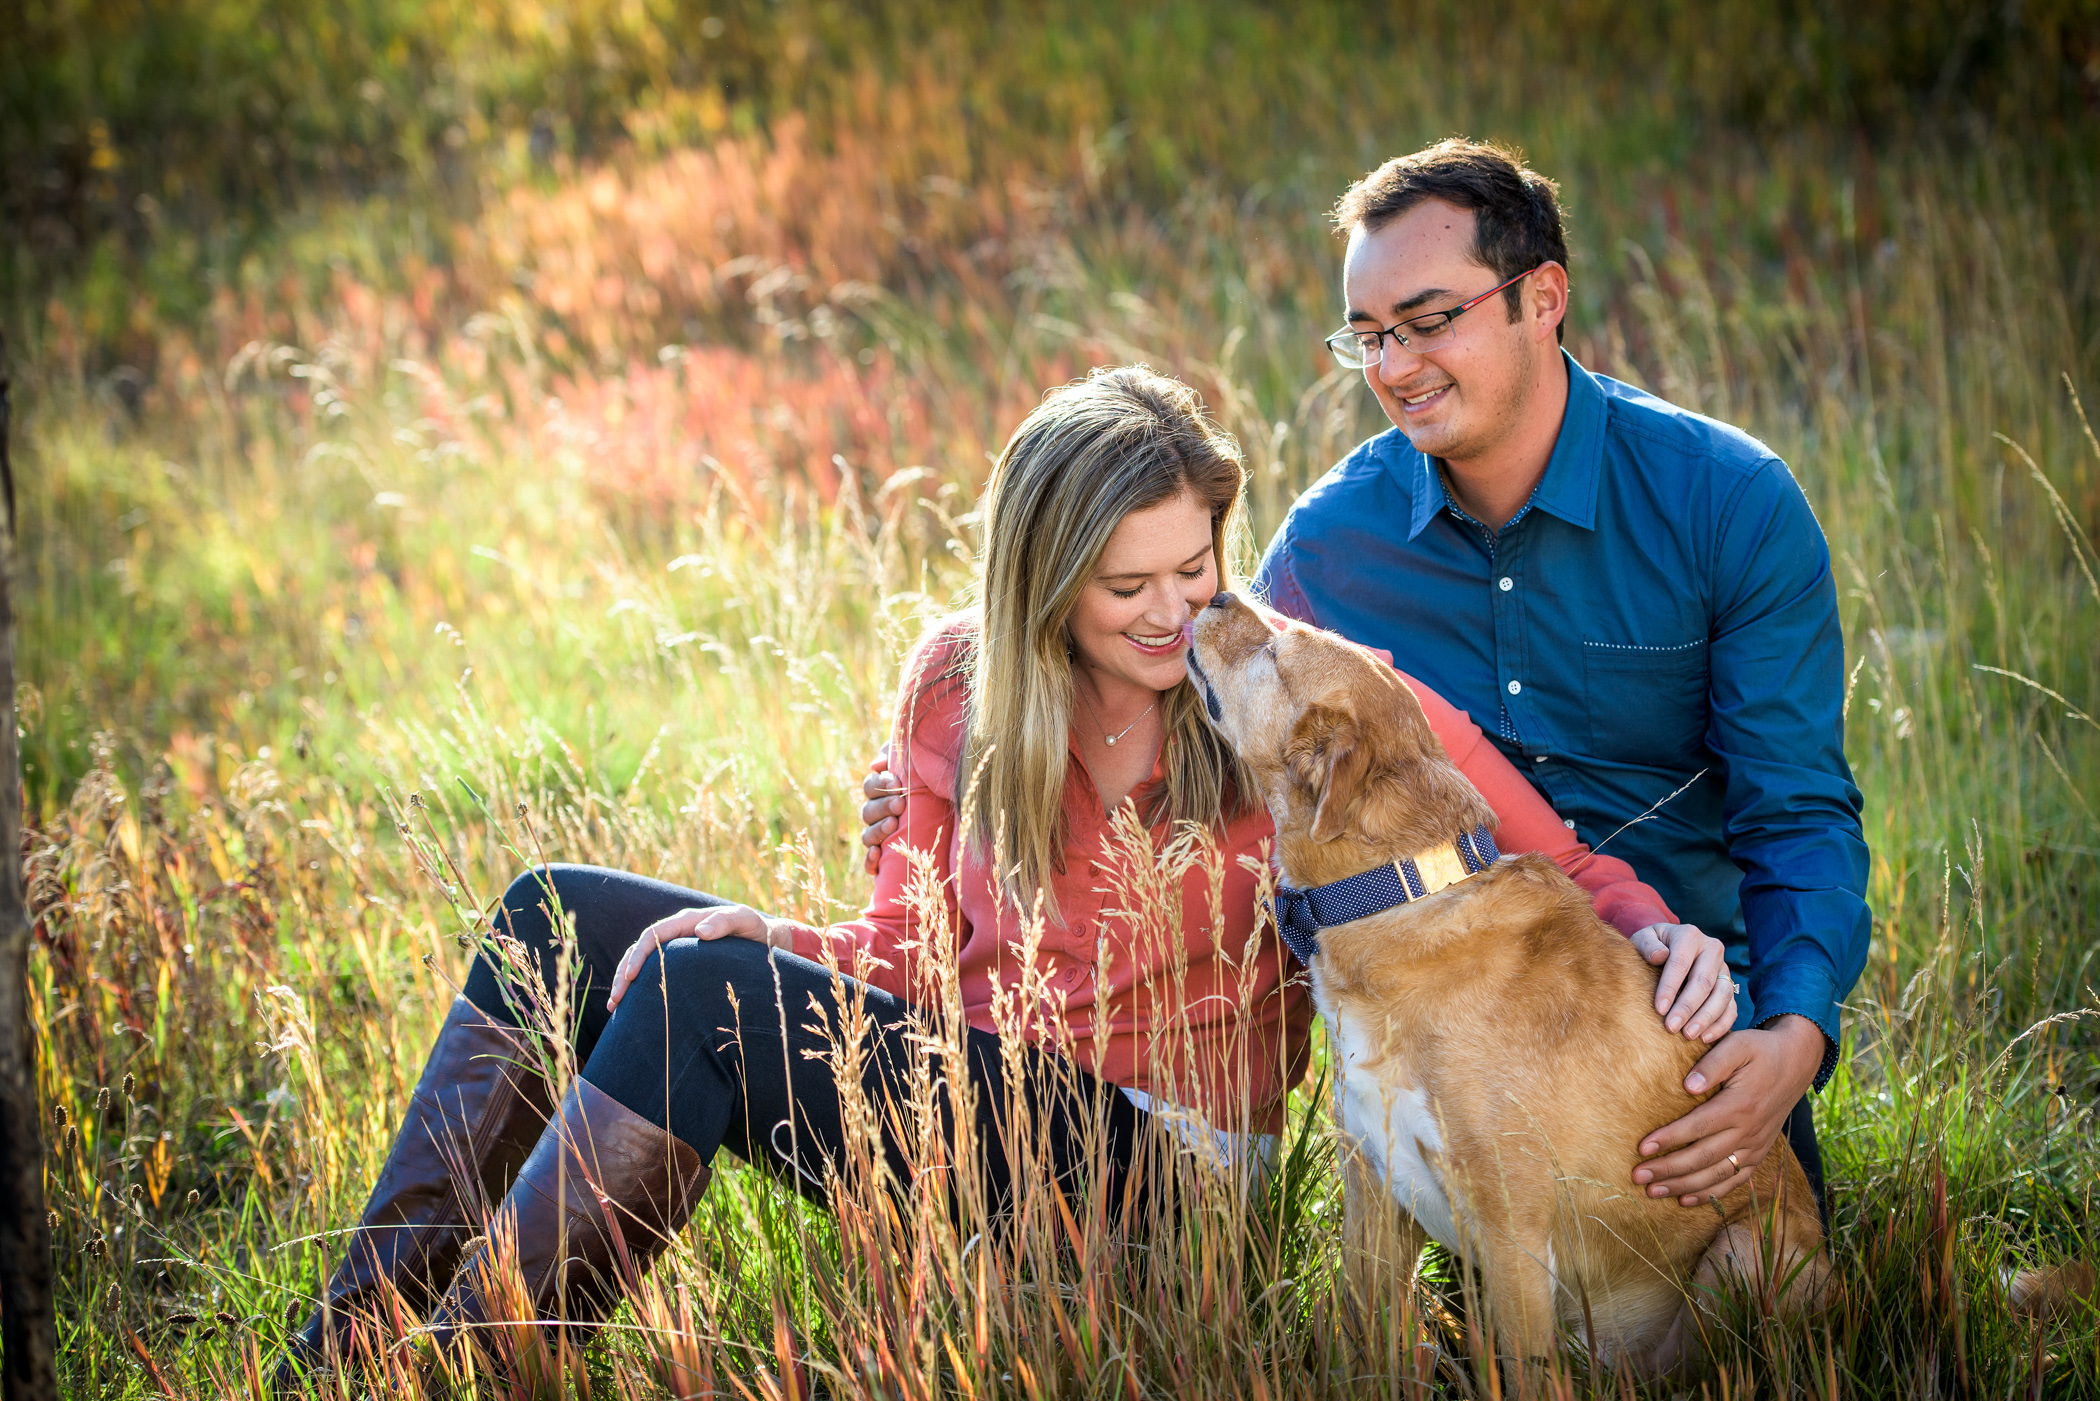 Michaela & Nick's Durango Colorado Family Pictures